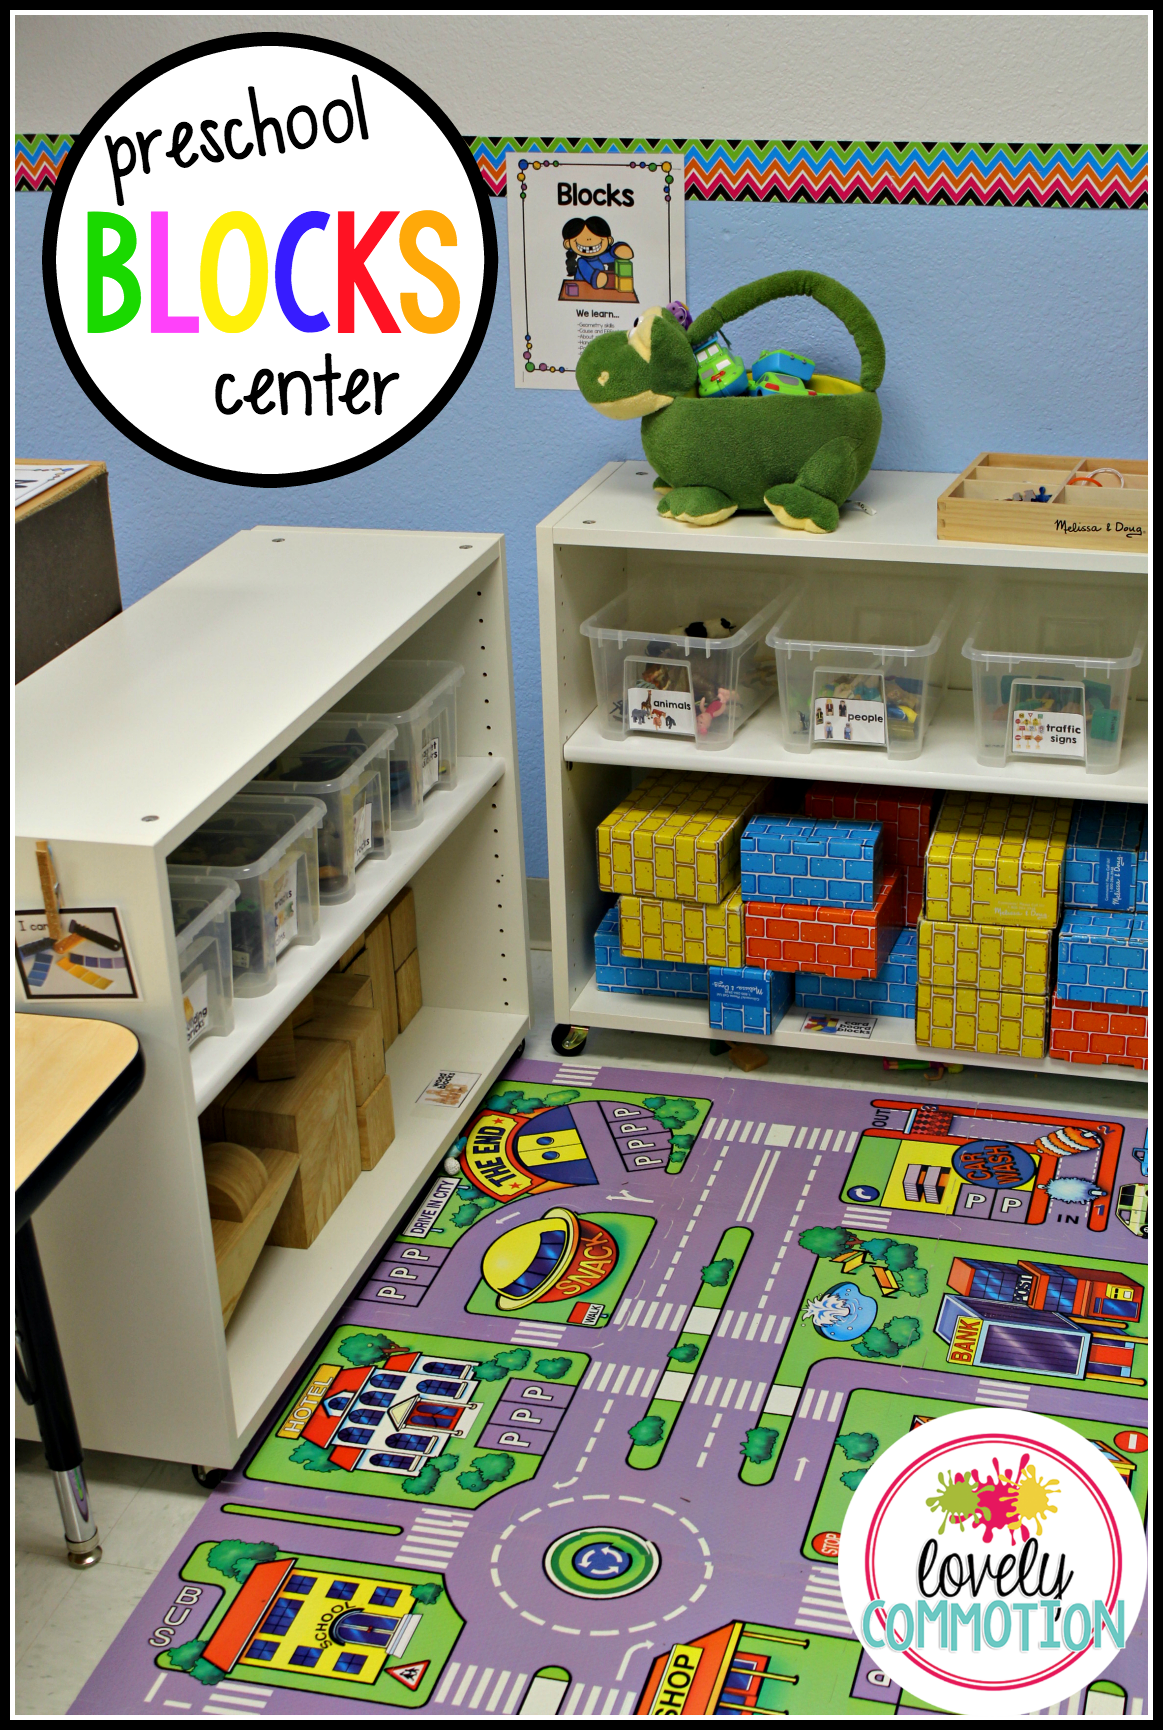 Preschool Blocks Center